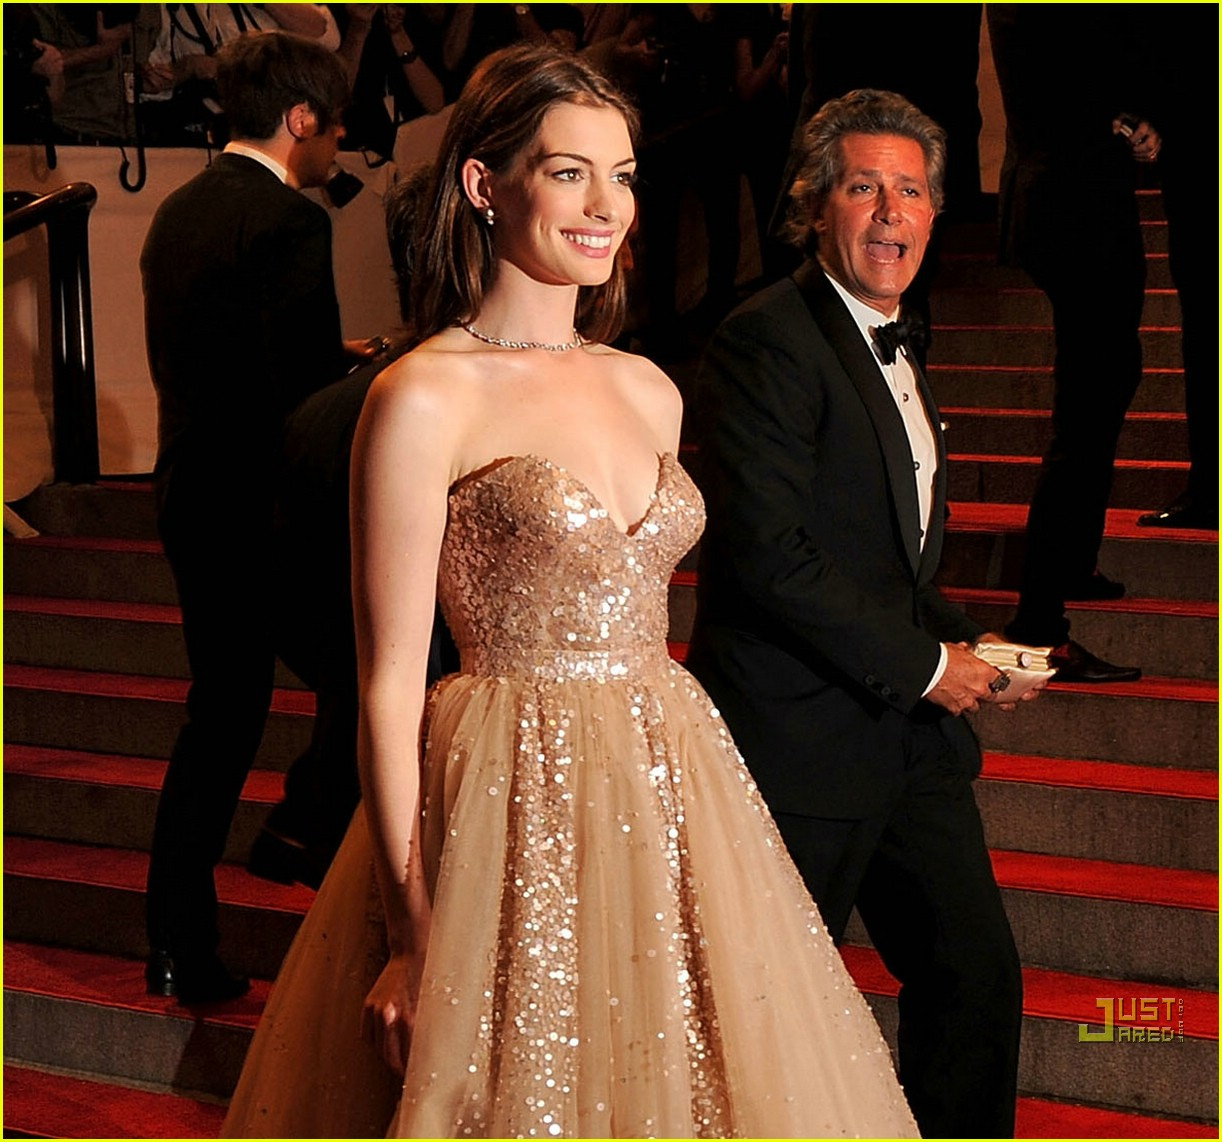 Full Sized Photo Of Anne Hathaway Met Ball 2010 03